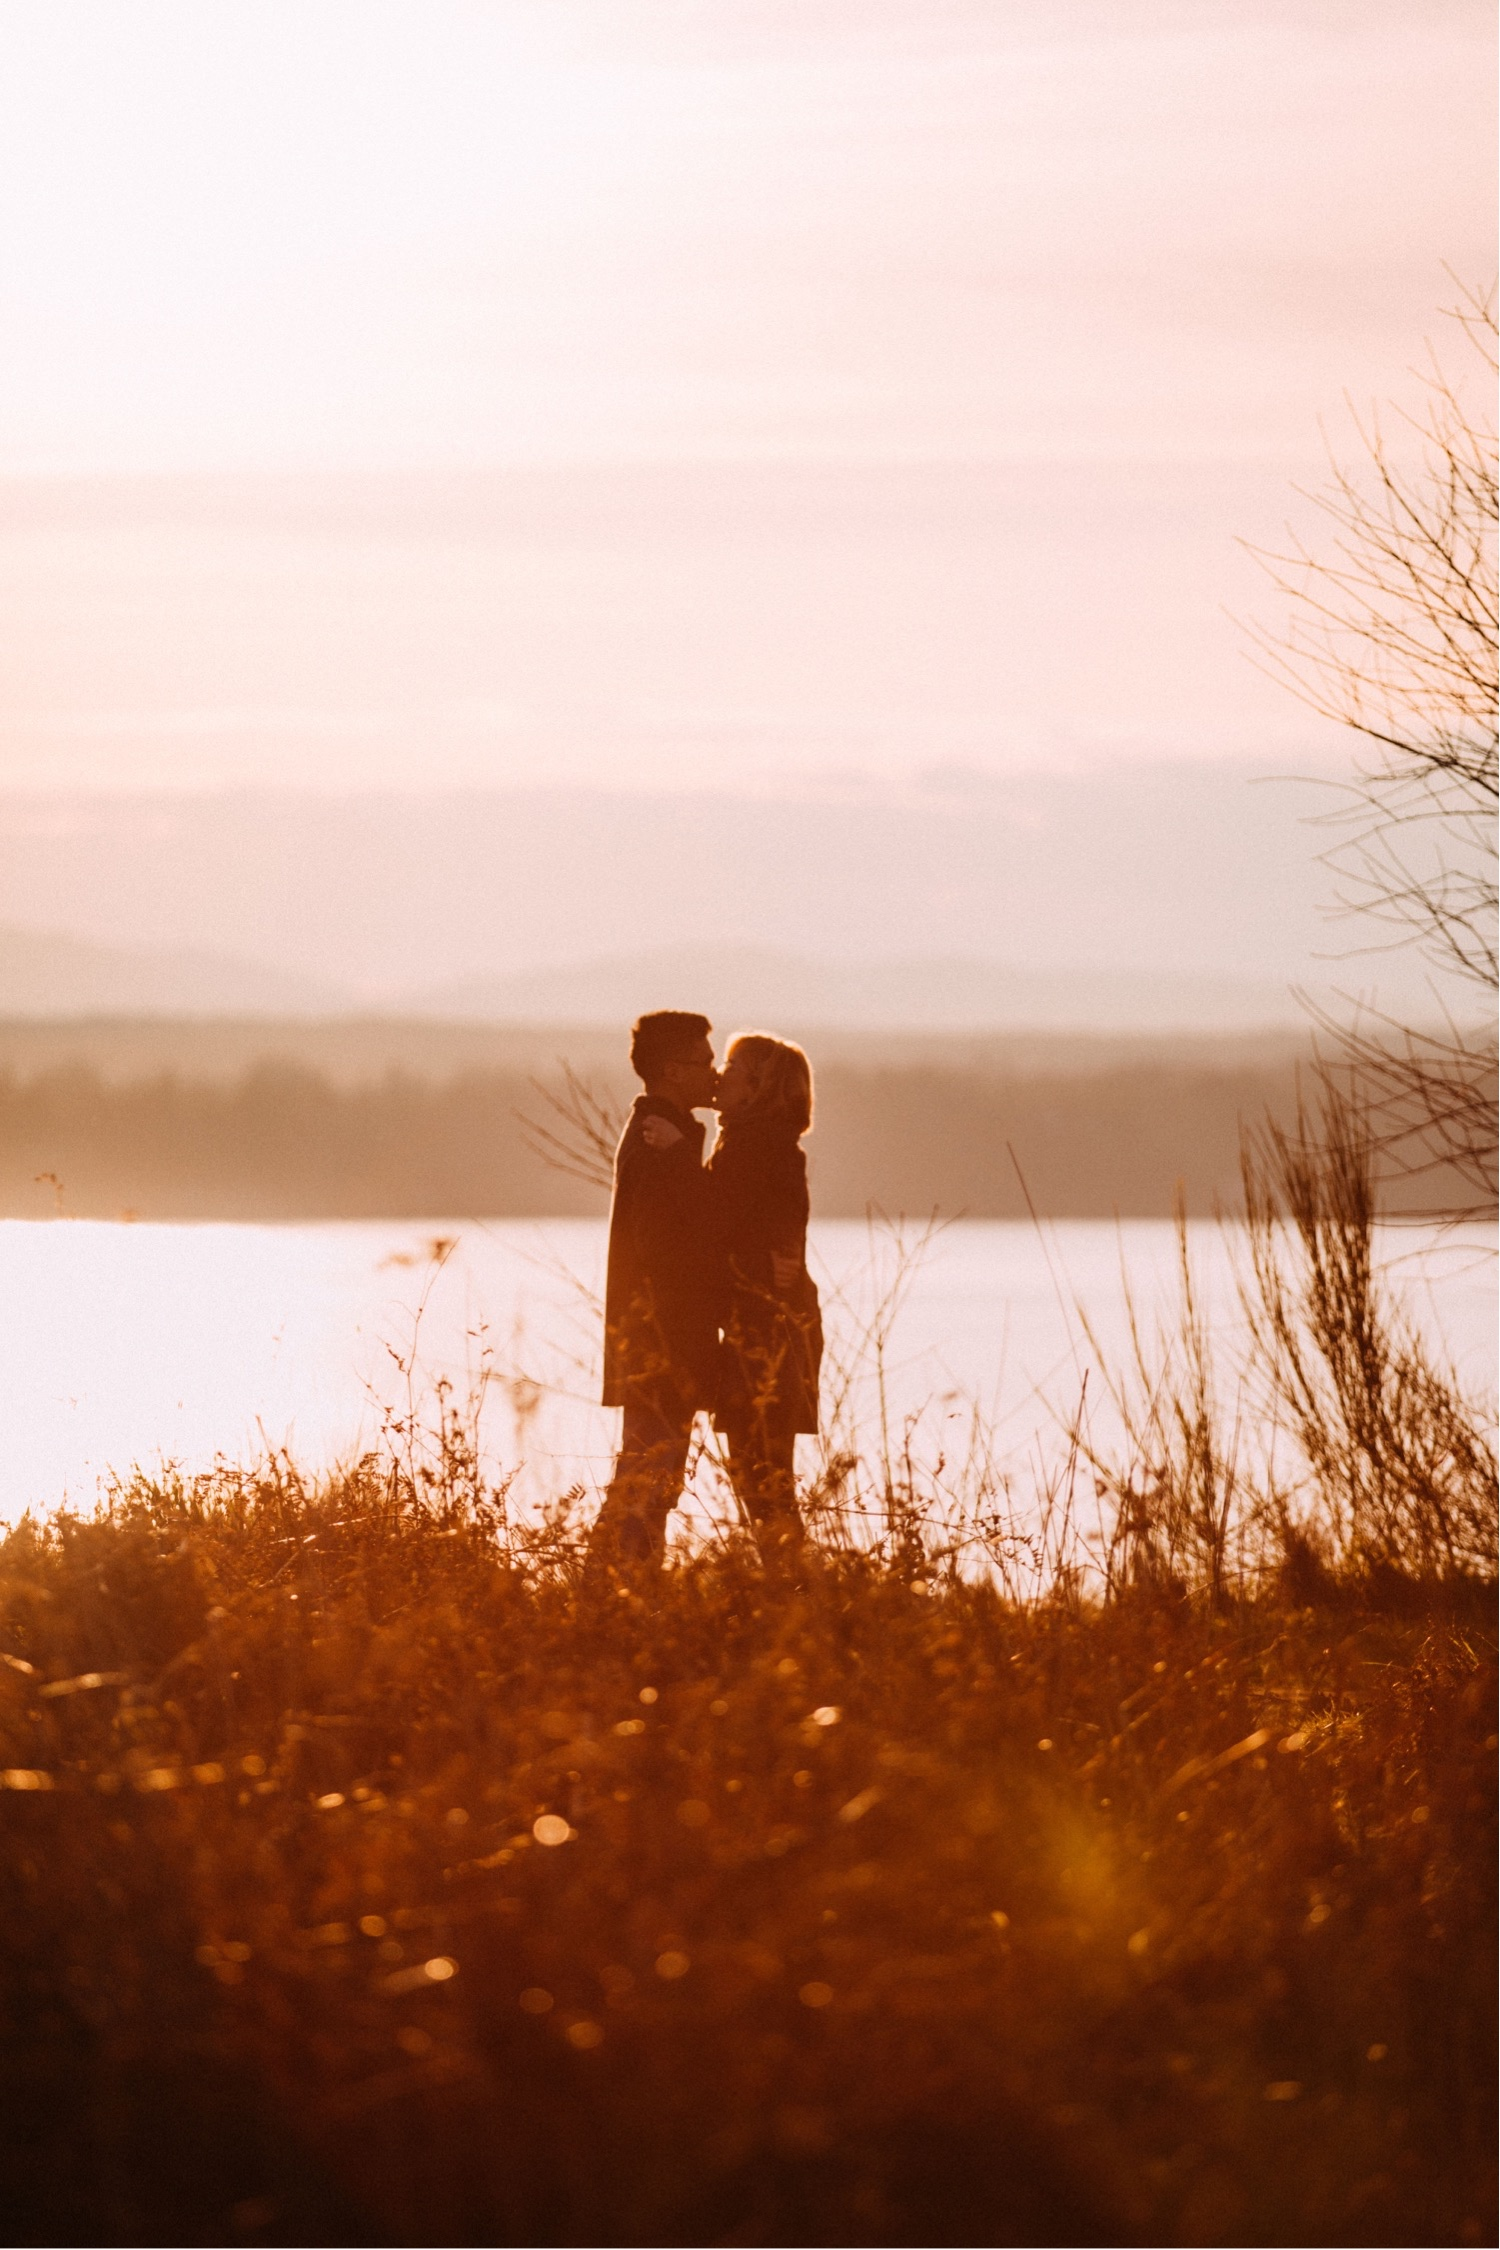 07_MC-21_sunsetproposal_adventure,_adventurous,_discoverypark_zoe_elopement_elopementphotographer_zoeburchardstudio_seattlebride_sunset_burchard_proposal,_seattle_photographer.jpg